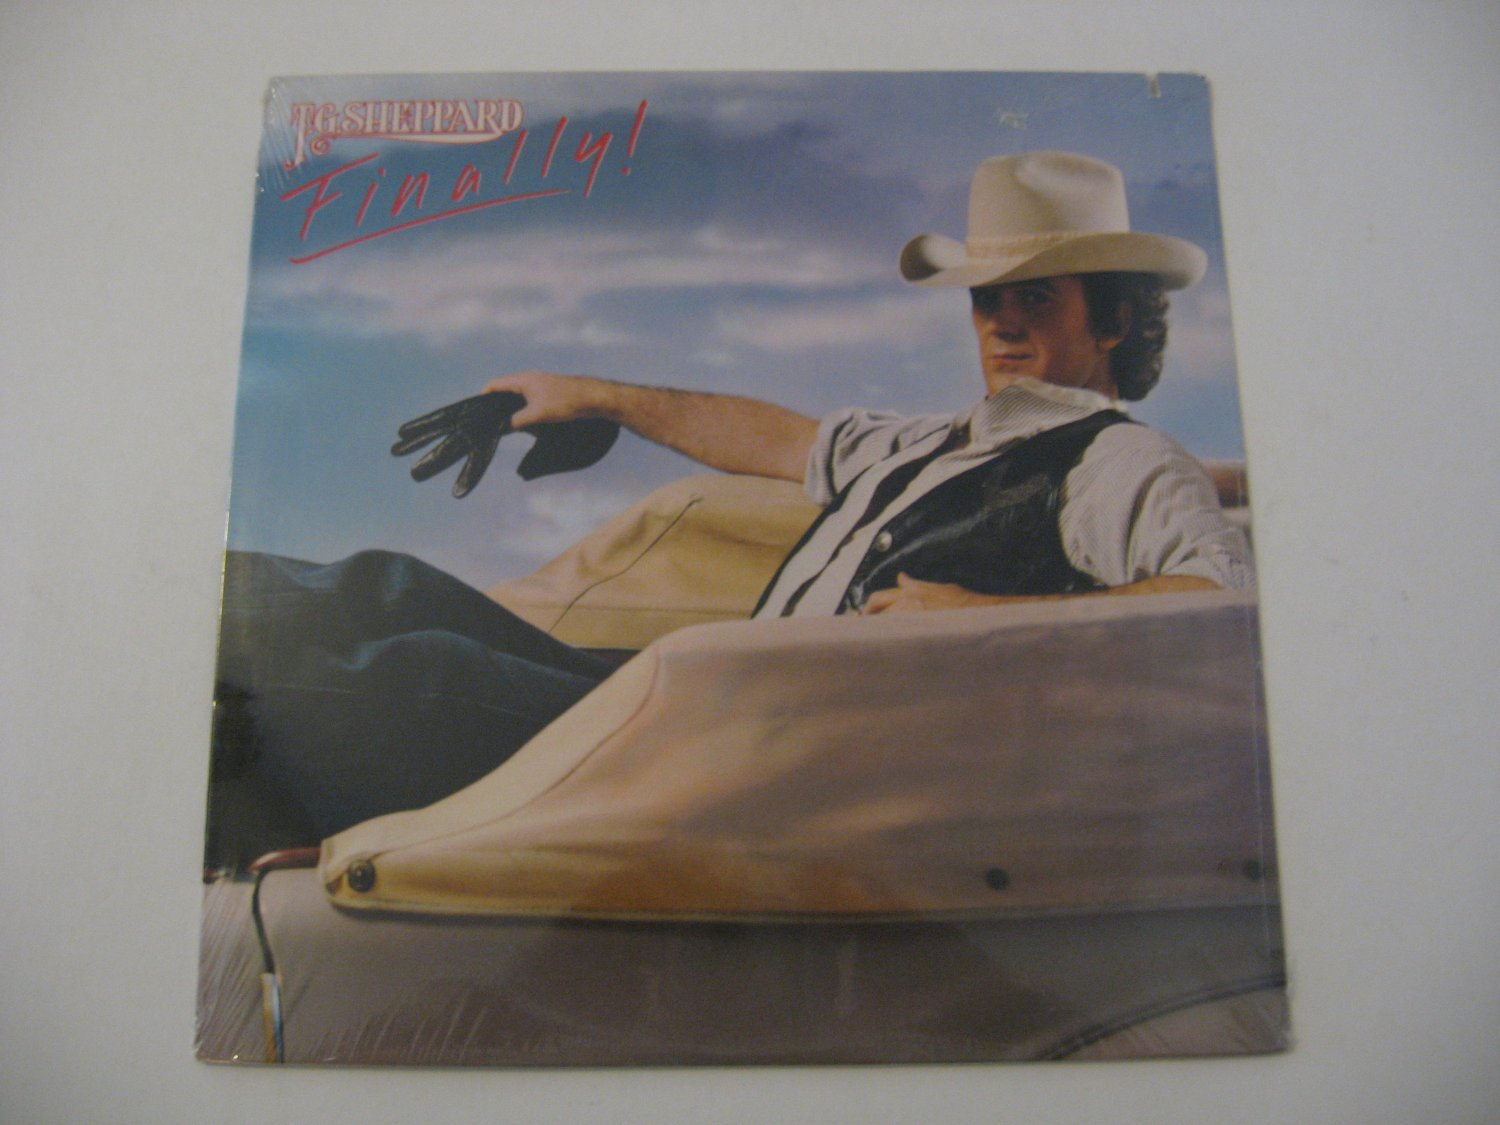 Factory Sealed! - T.G. Sheppard - Finally! - 1982 (Record)